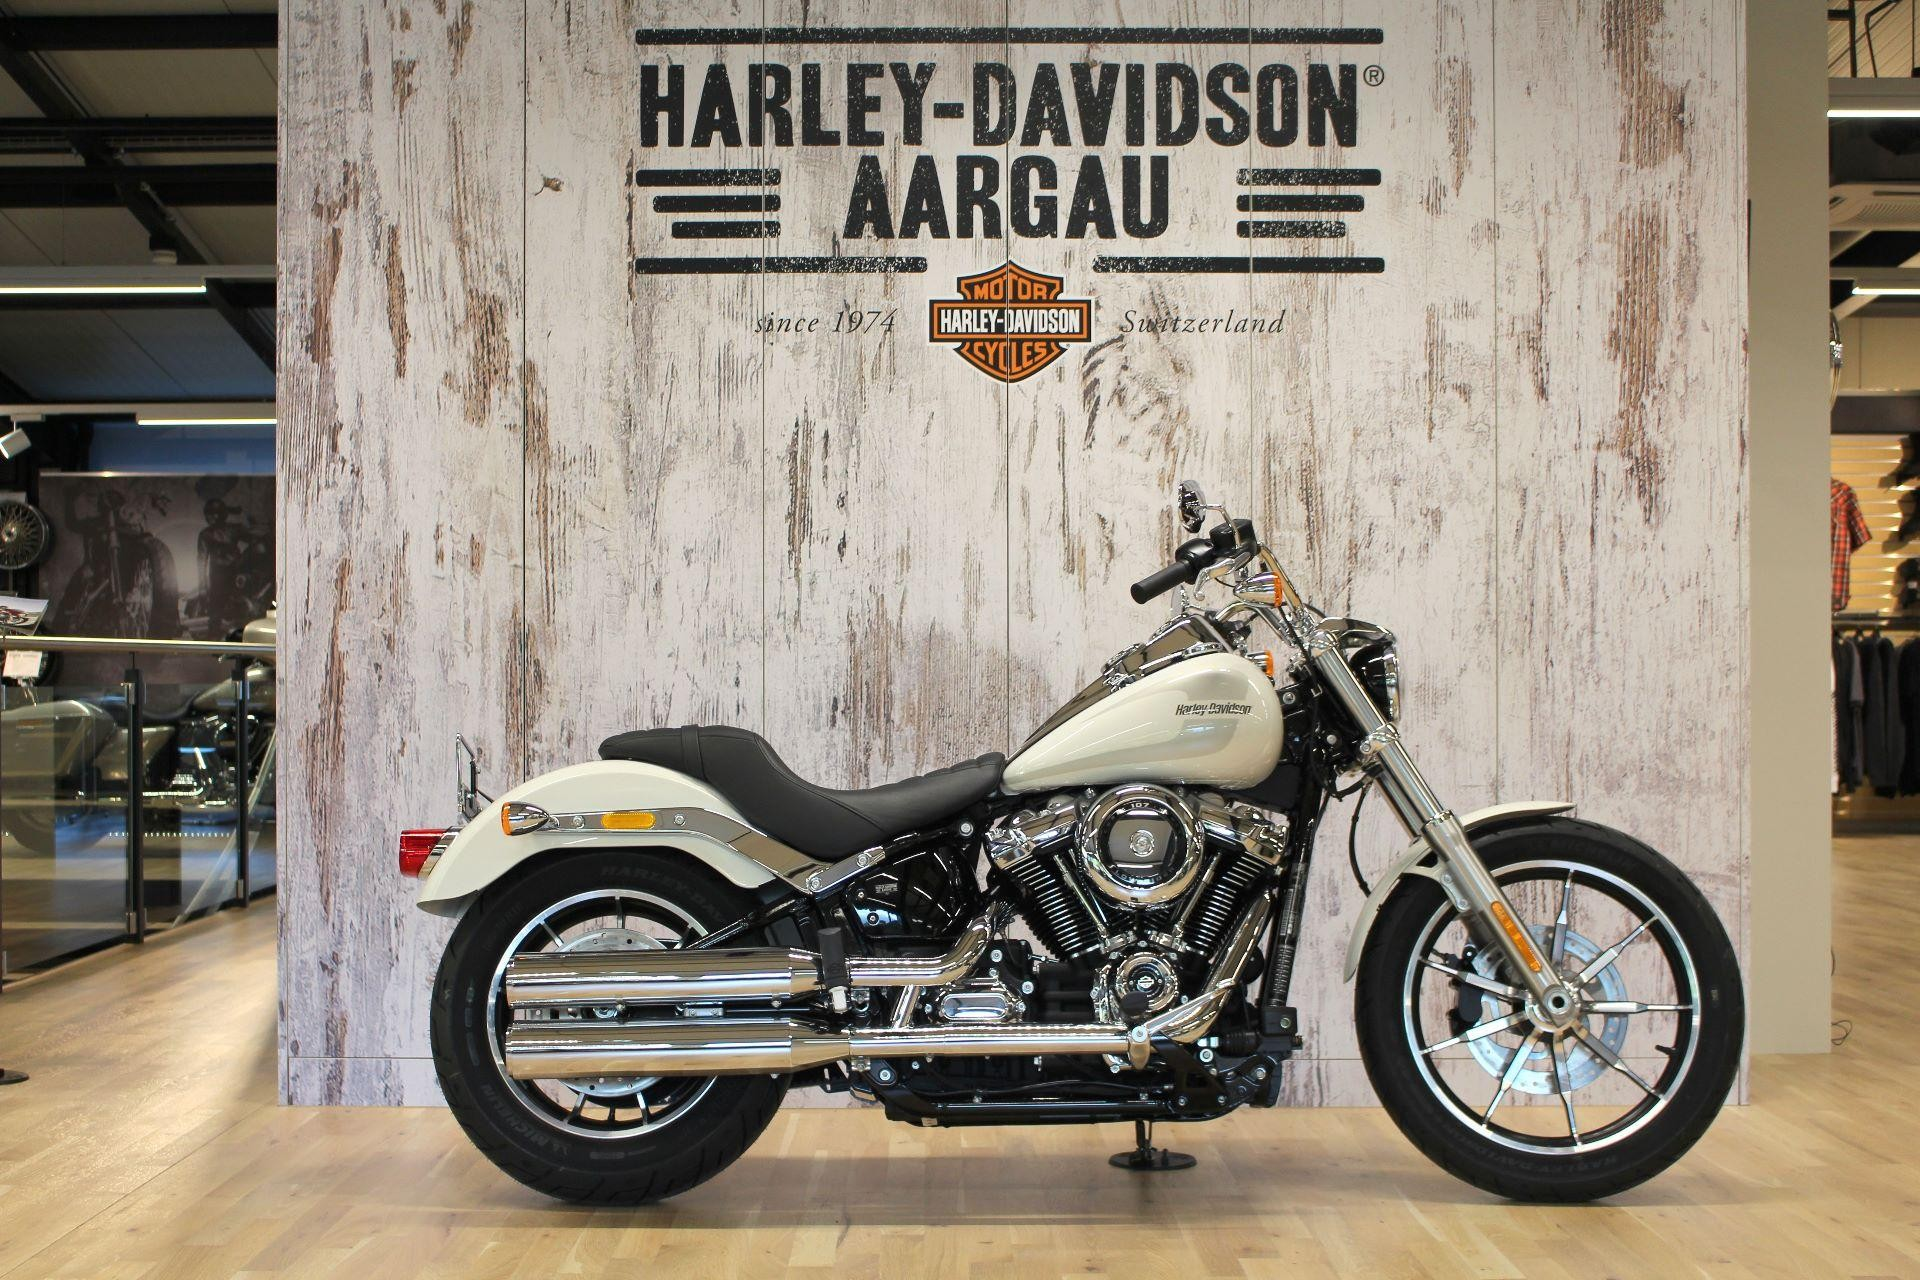 moto neuve acheter harley davidson fxlr 1745 low rider 107 model 2018 harley davidson aargau. Black Bedroom Furniture Sets. Home Design Ideas